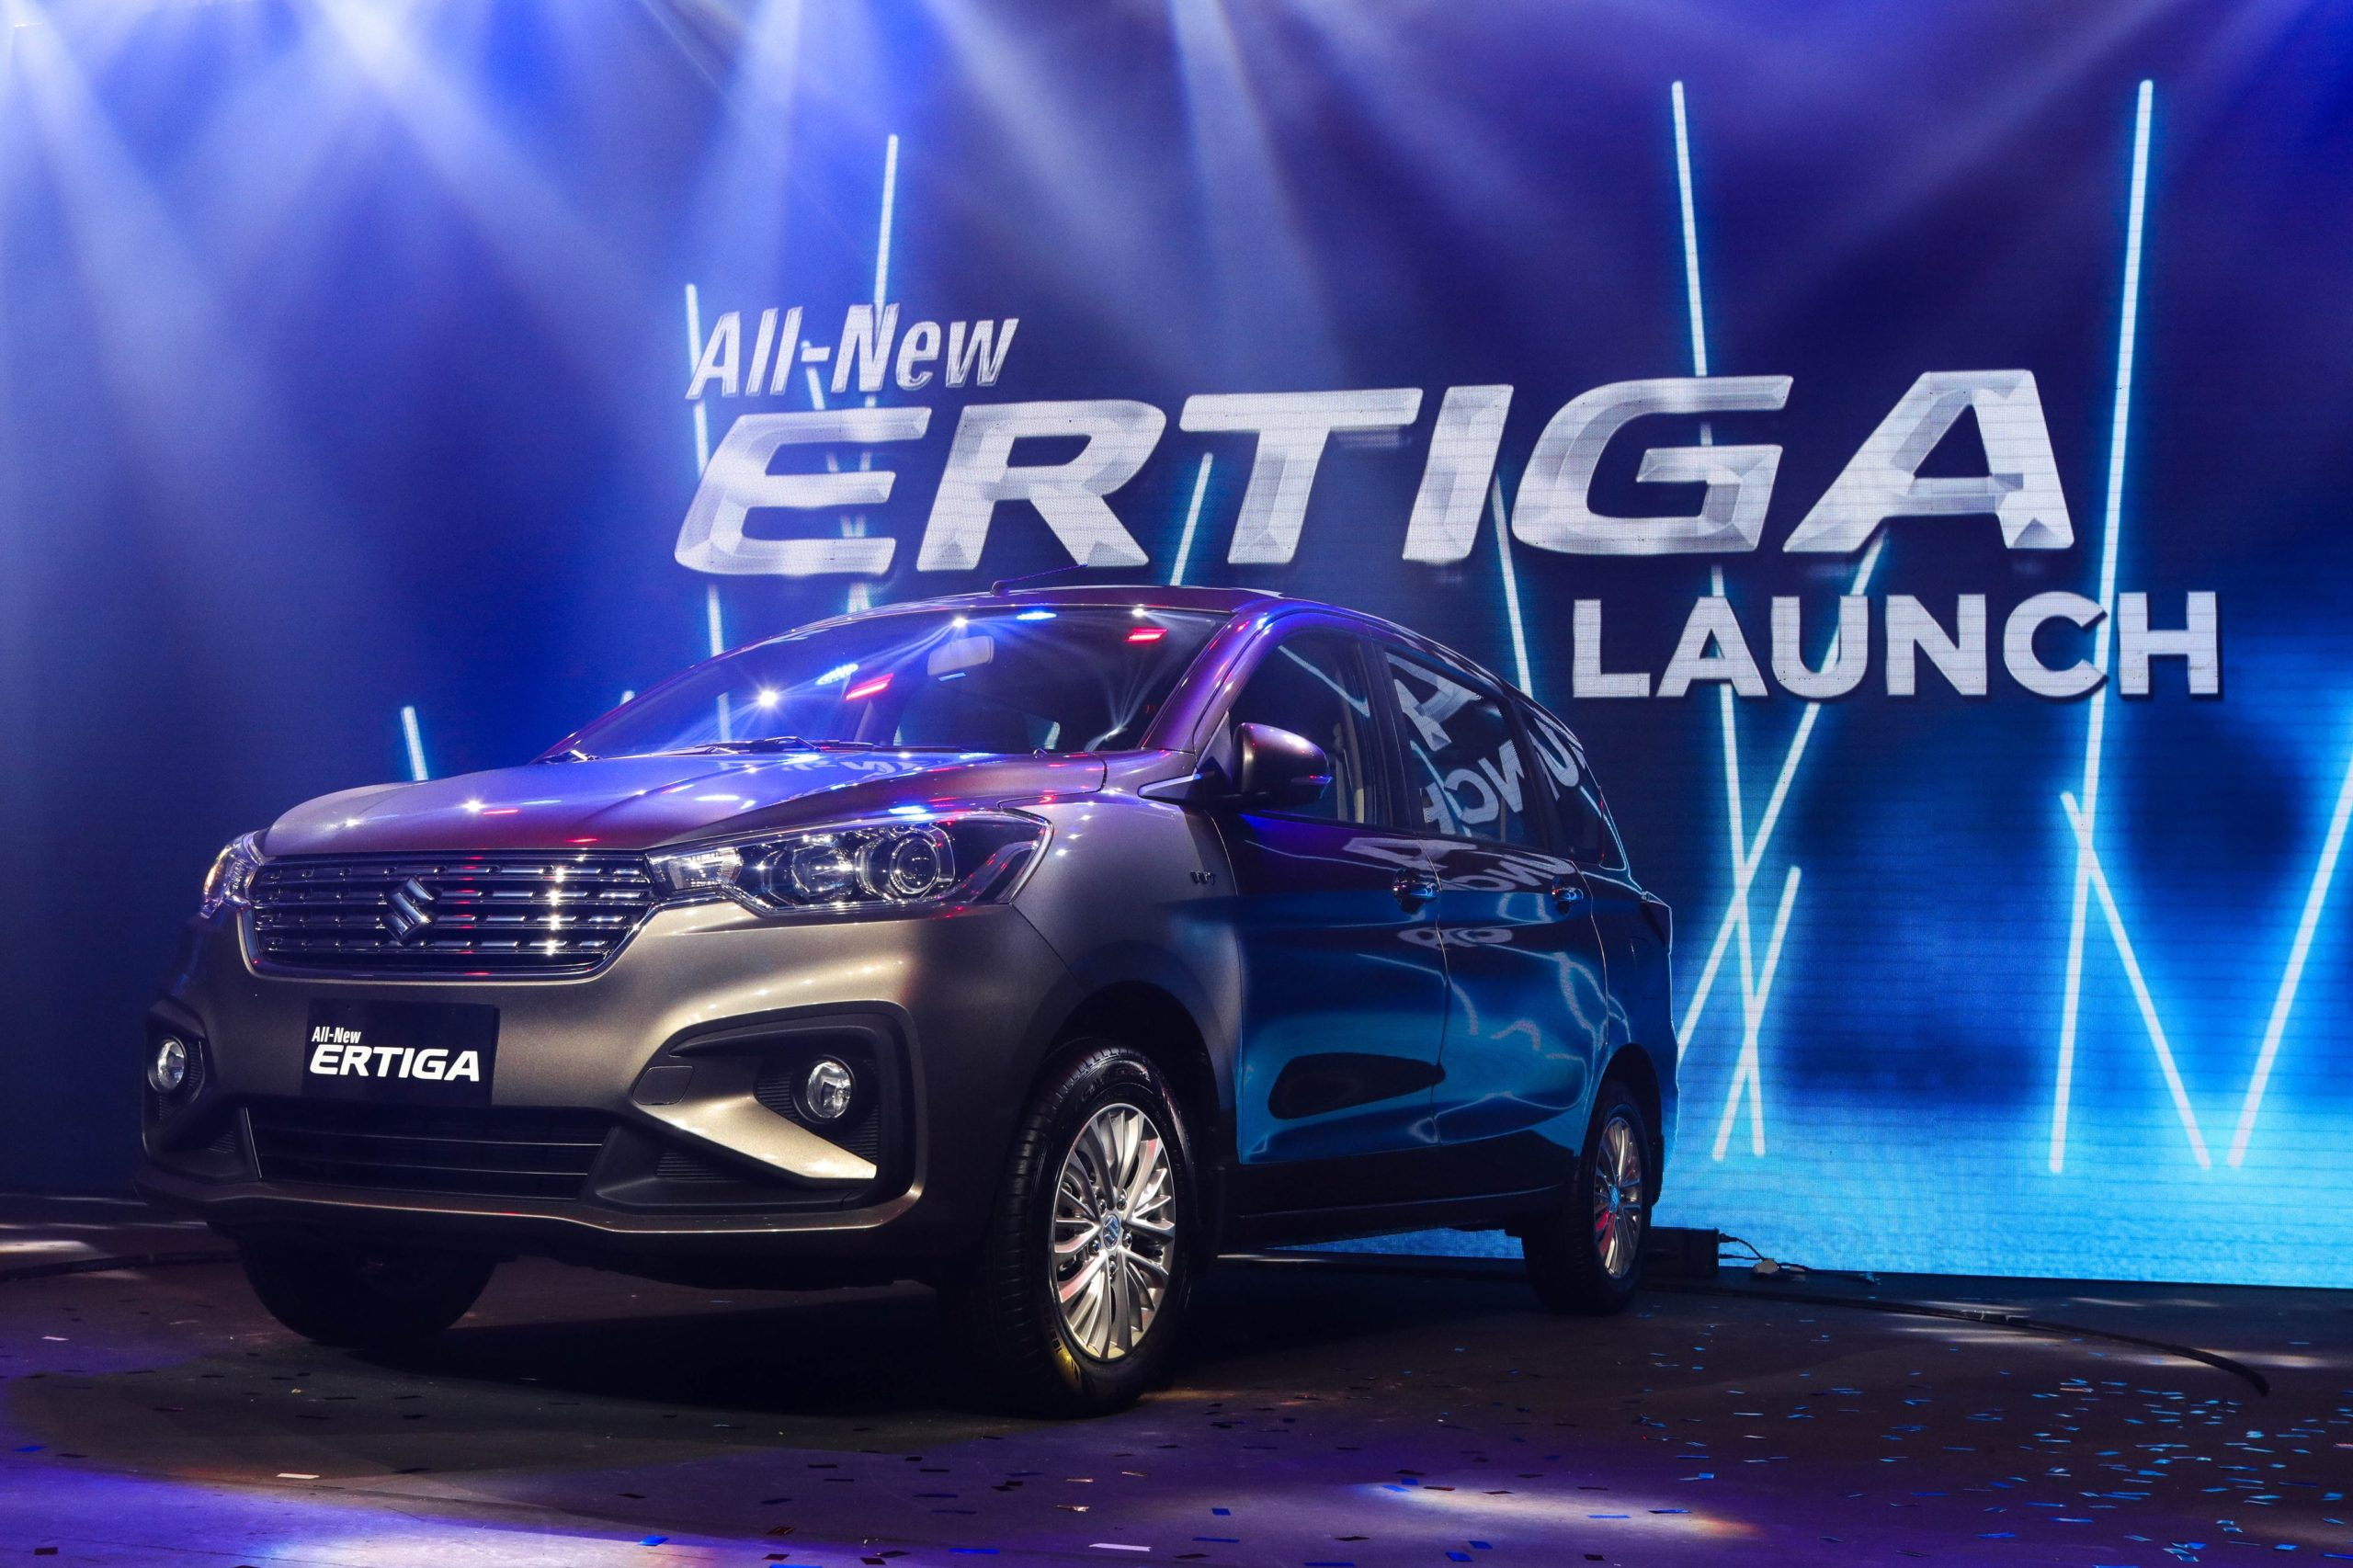 Suzuki PH brandishes fortified Ertiga in their launching, highlighting the perfect blend of strength and elegance